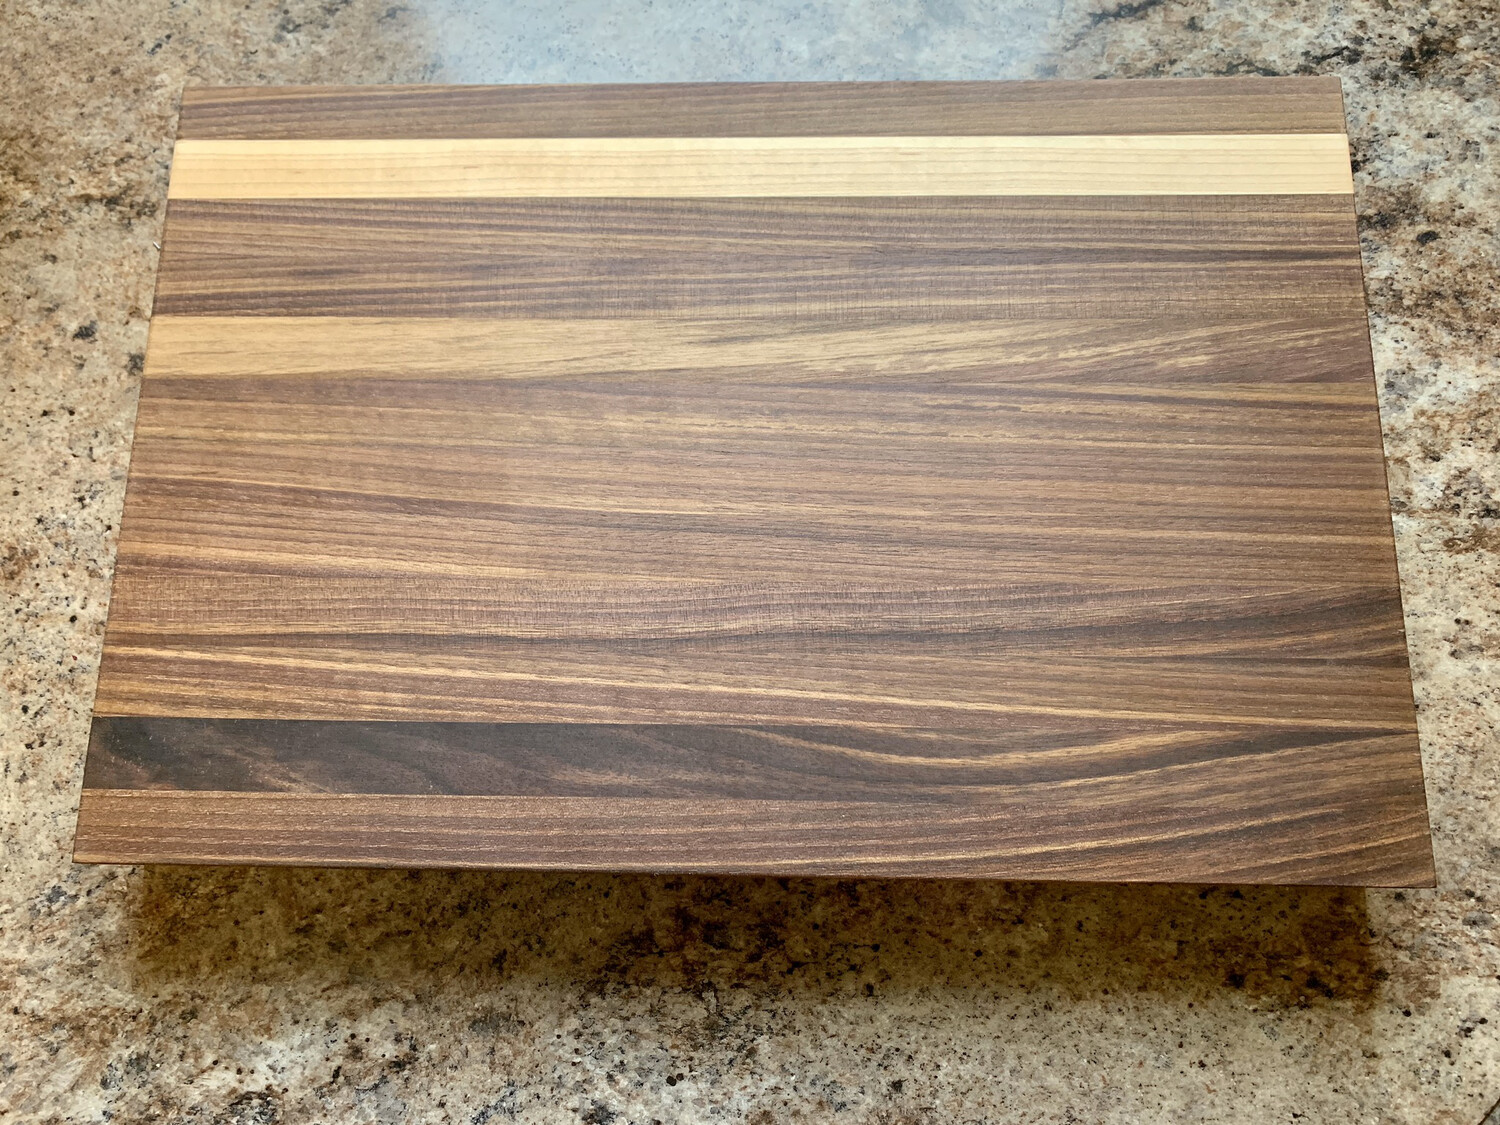 Black Walnut And Maple Cutting Board